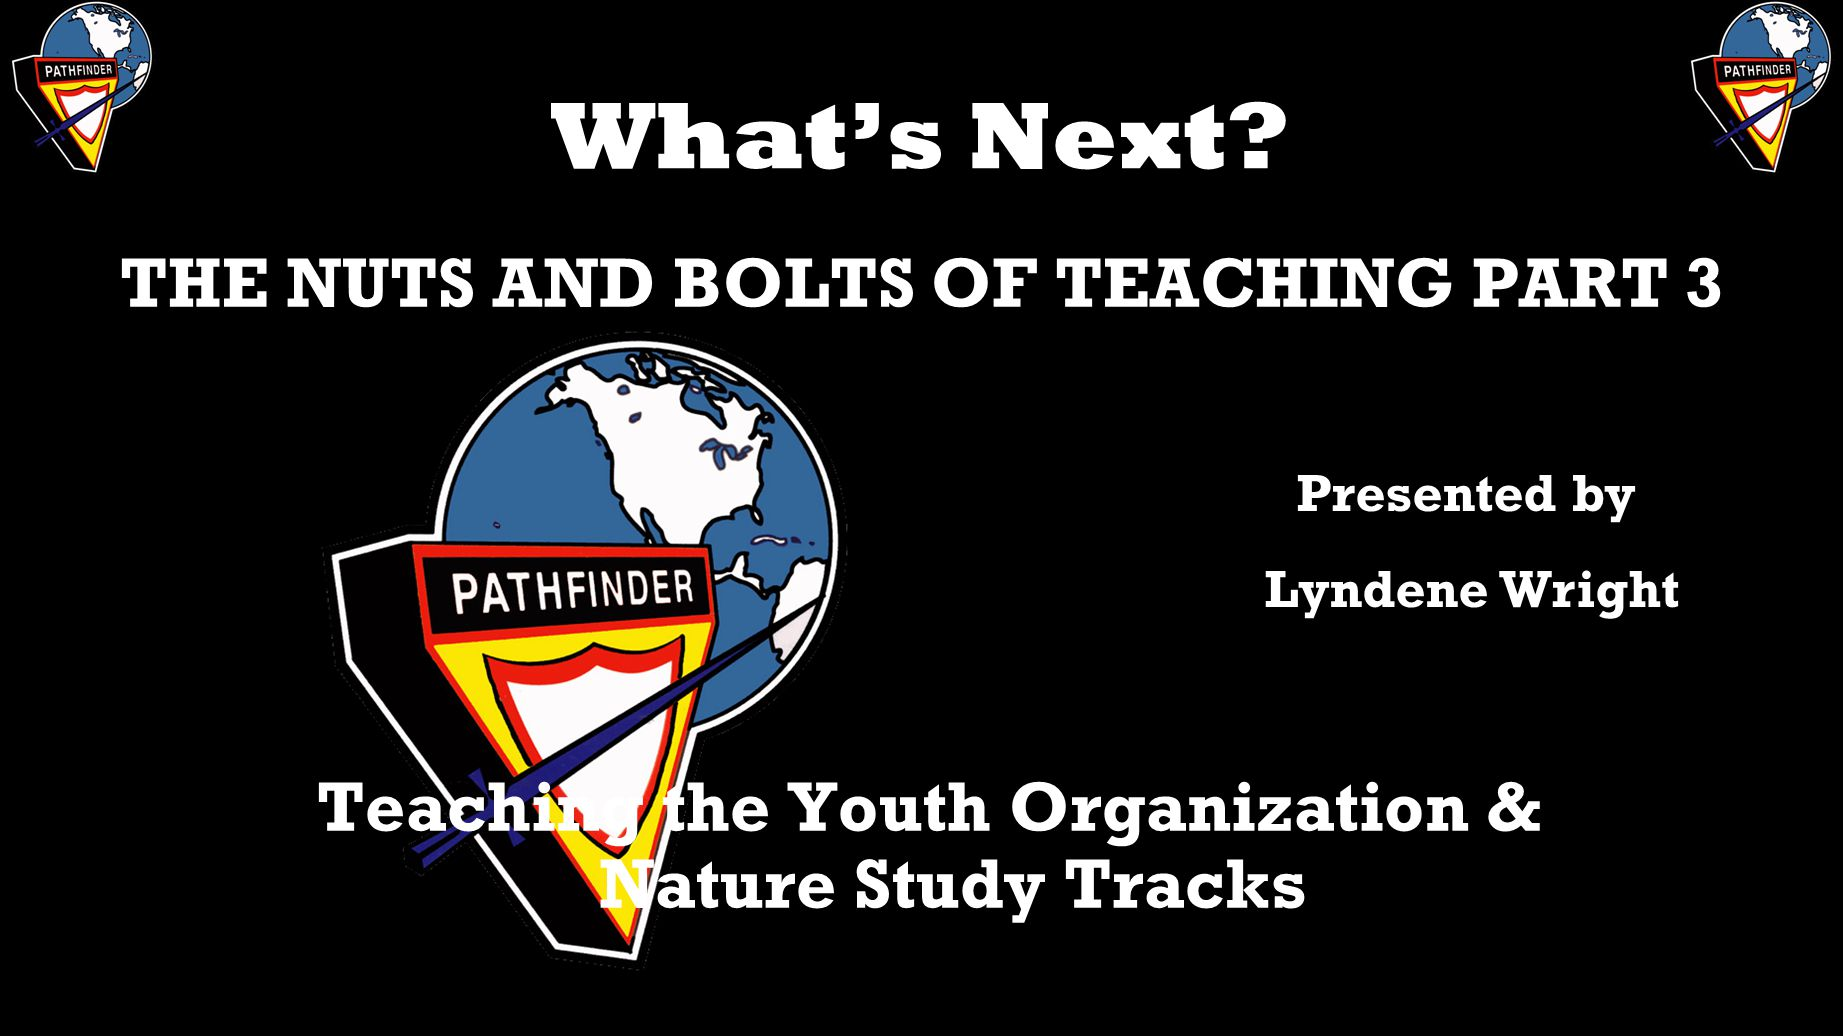 What's Next? THE NUTS AND BOLTS OF TEACHING PART 3 Teaching the Youth Organization & Nature Study Tracks Presented by Lyndene Wright